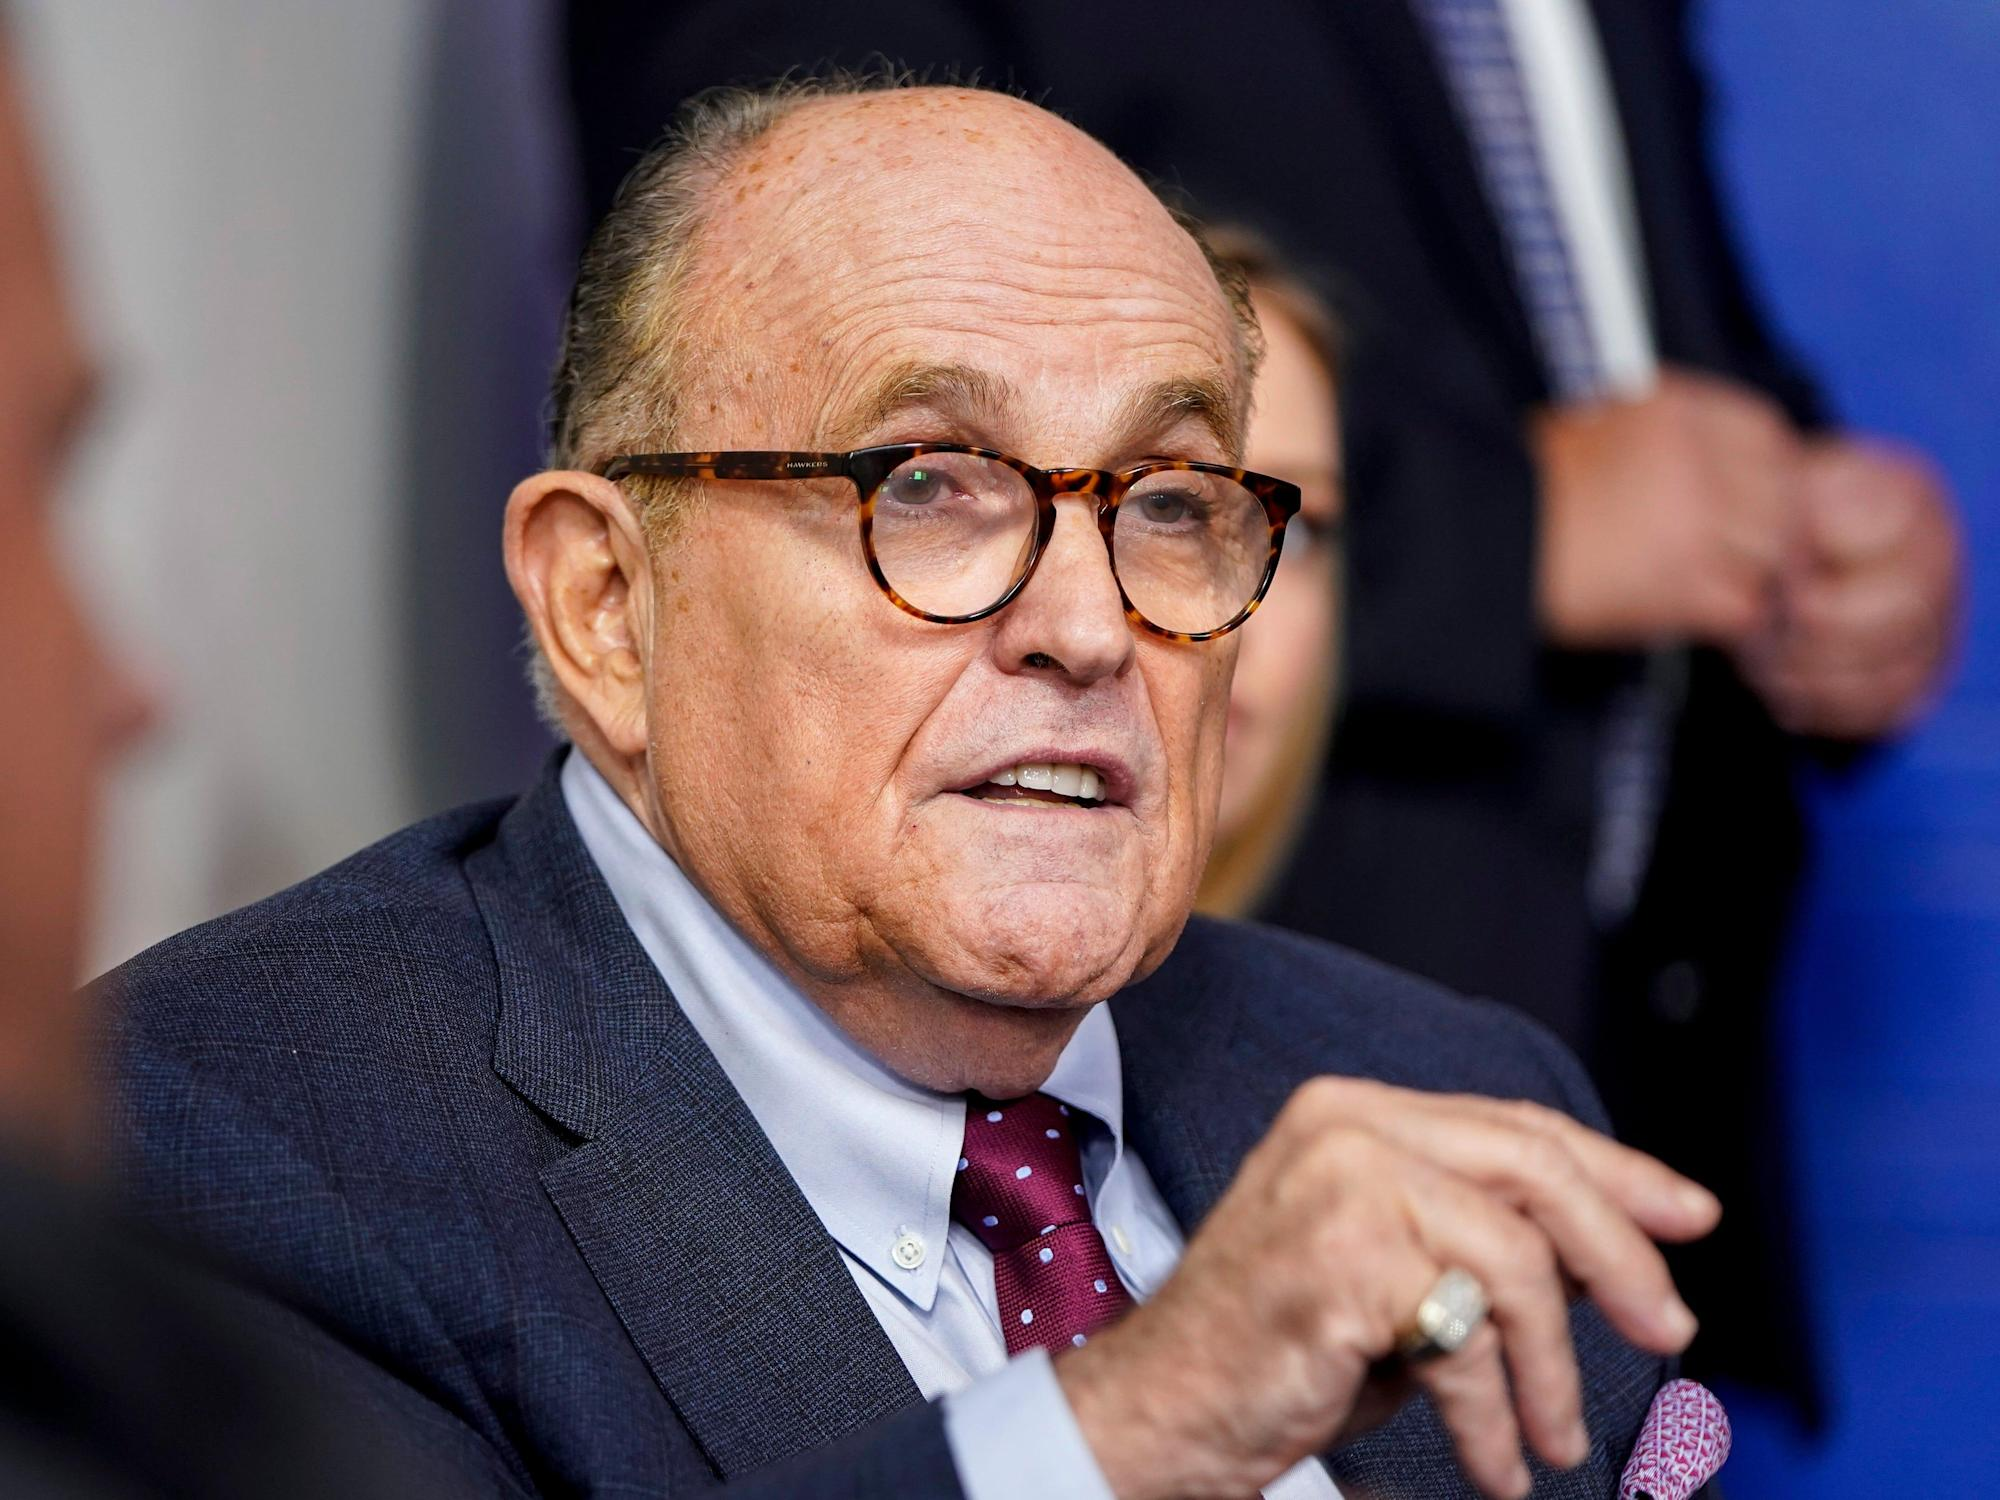 Rudy Giuliani said he is working on Trump's defense for the impeachment trial and that he's open to the president himself testifying, ABC News report says